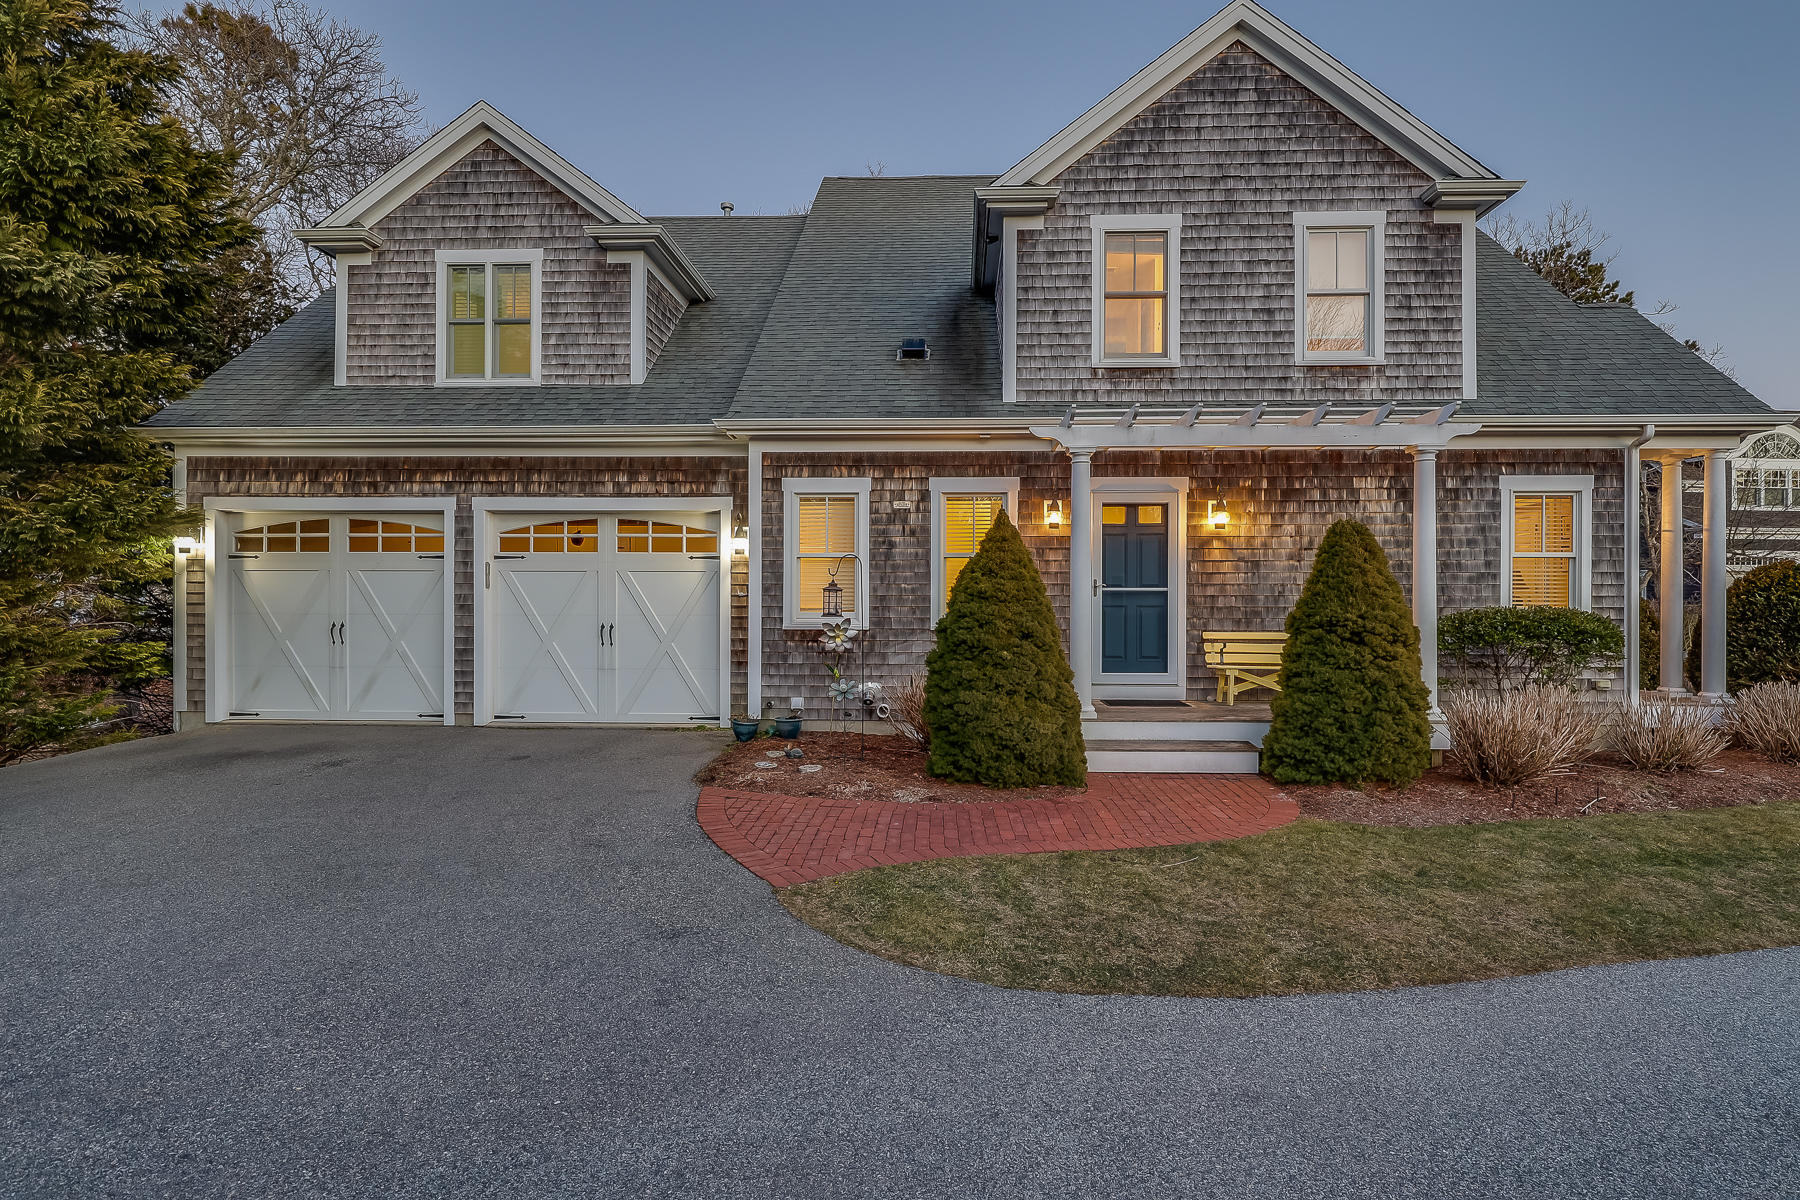 52 Oyster Shell Lane, East Falmouth MA, 02536 sales details